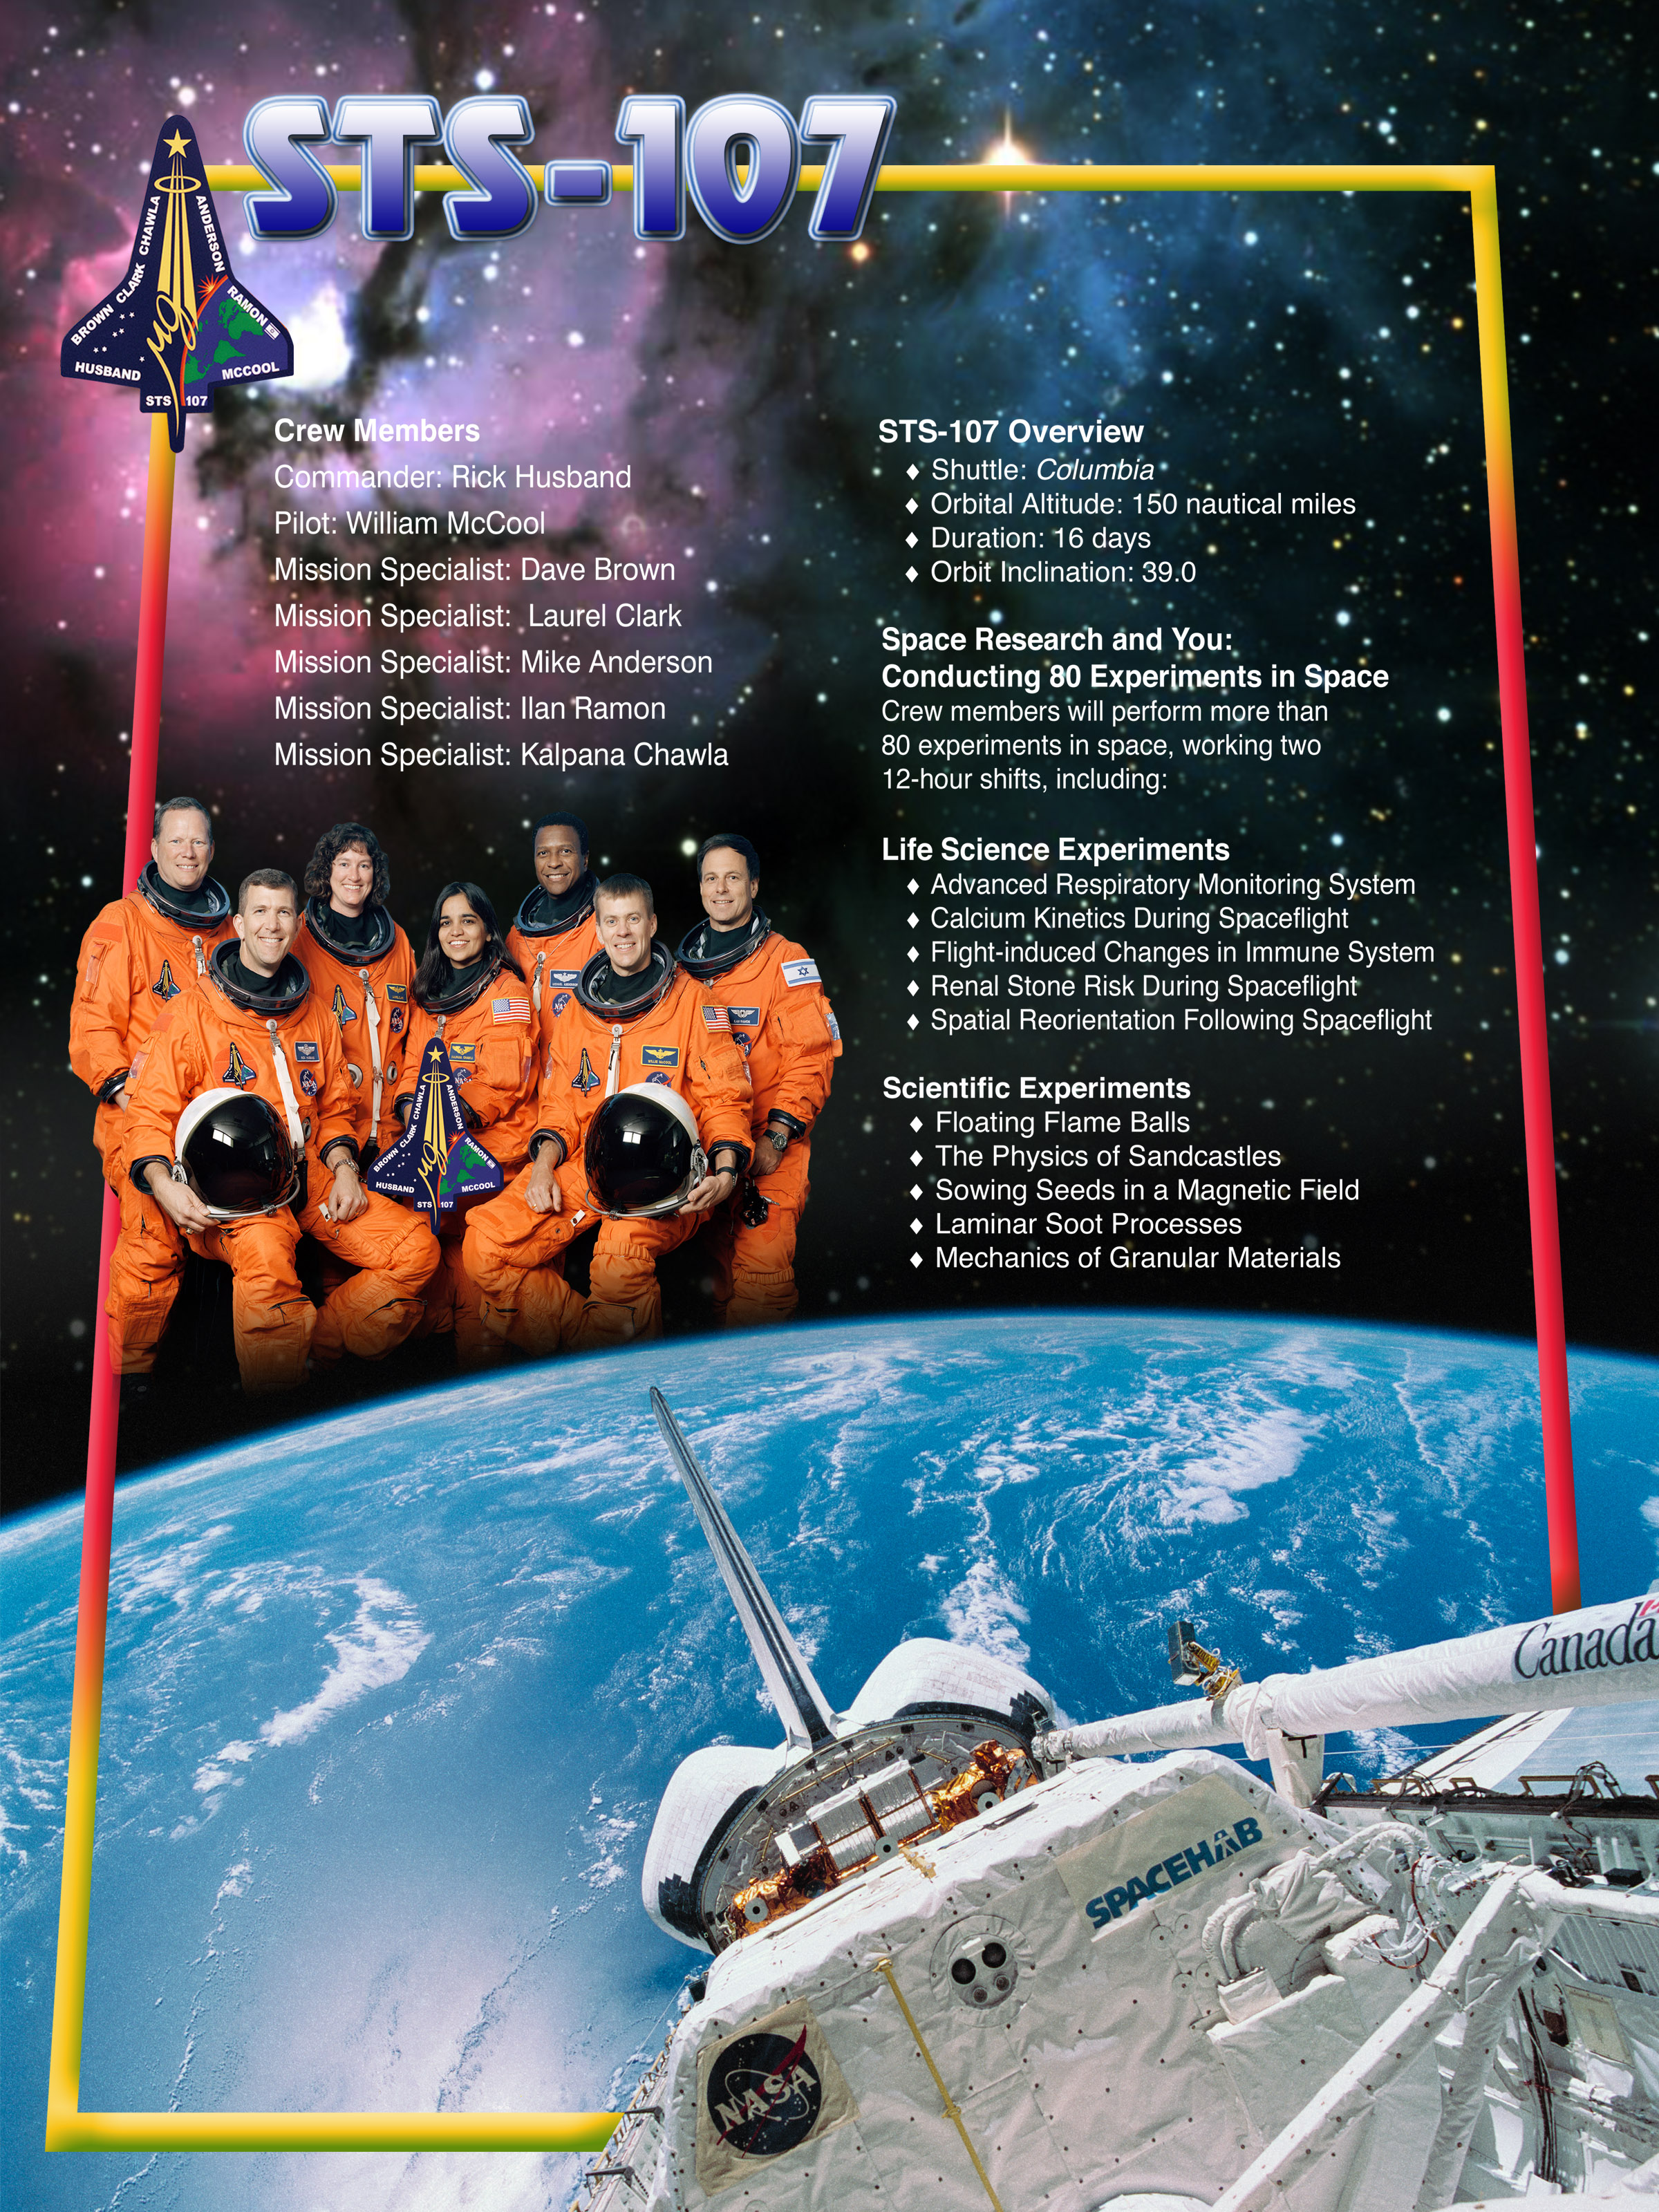 STS-107 Mission Poster